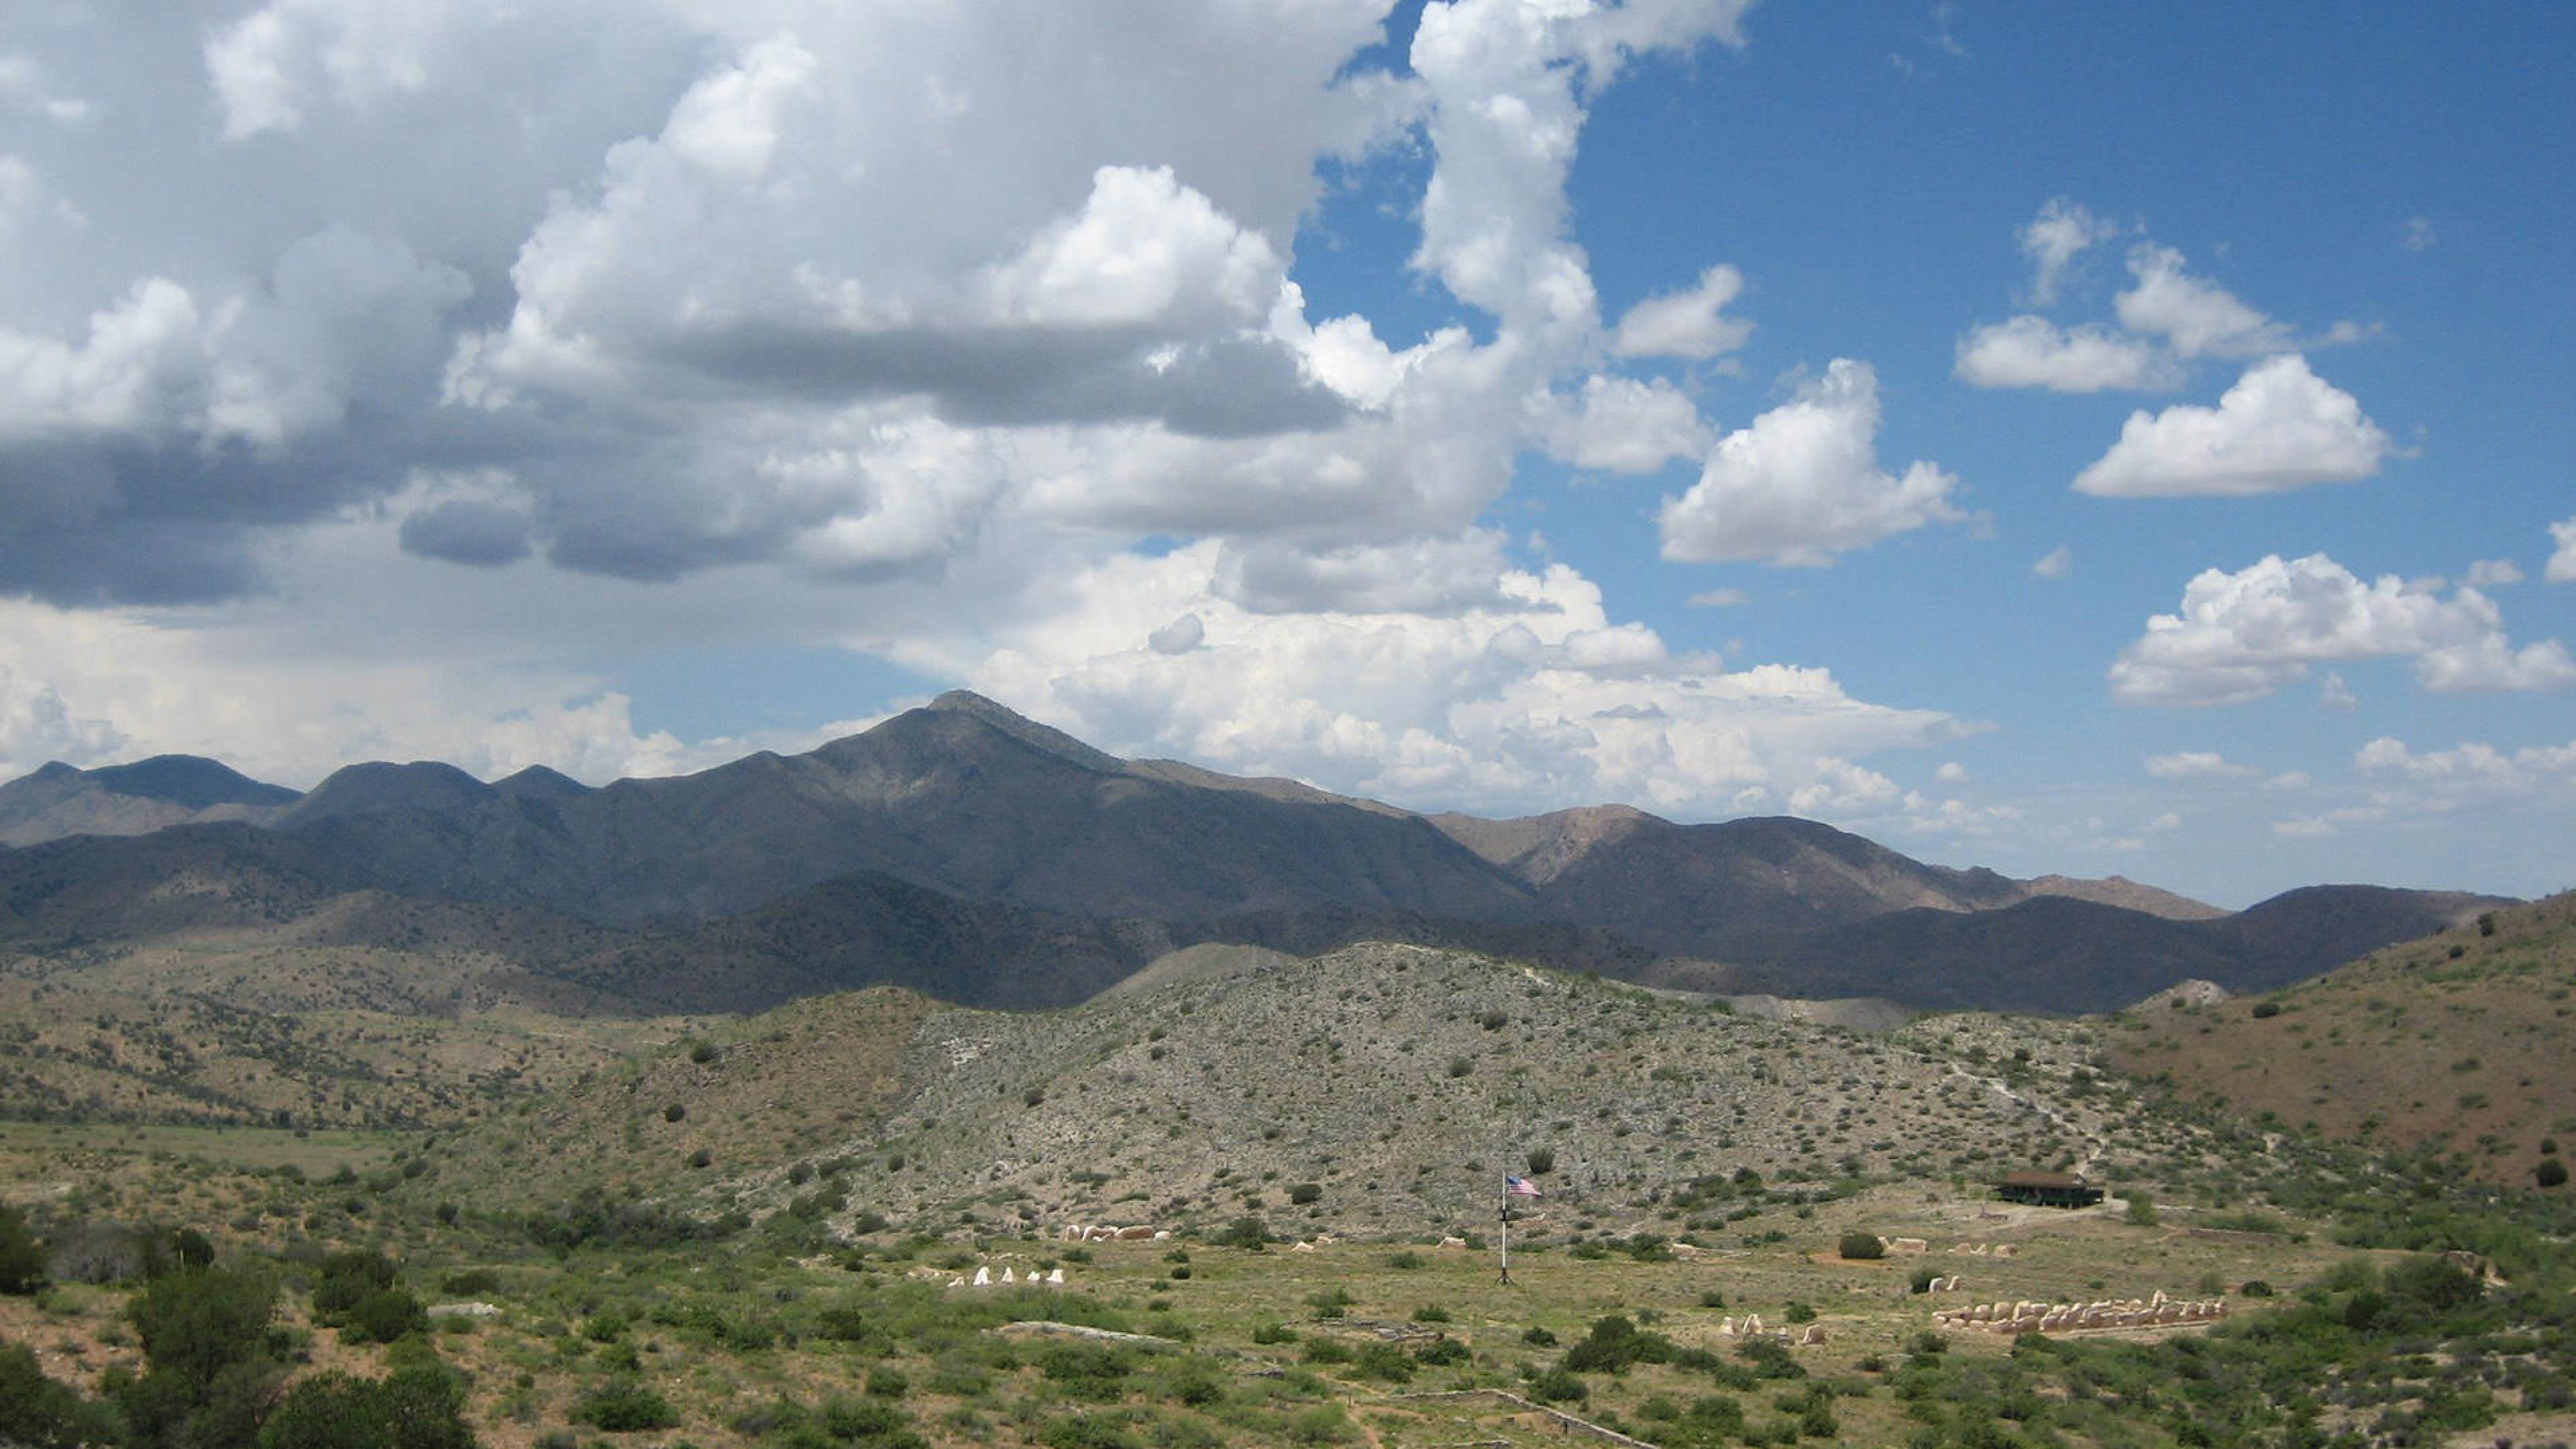 Mountain Range at Fort Bowie National Historic Site